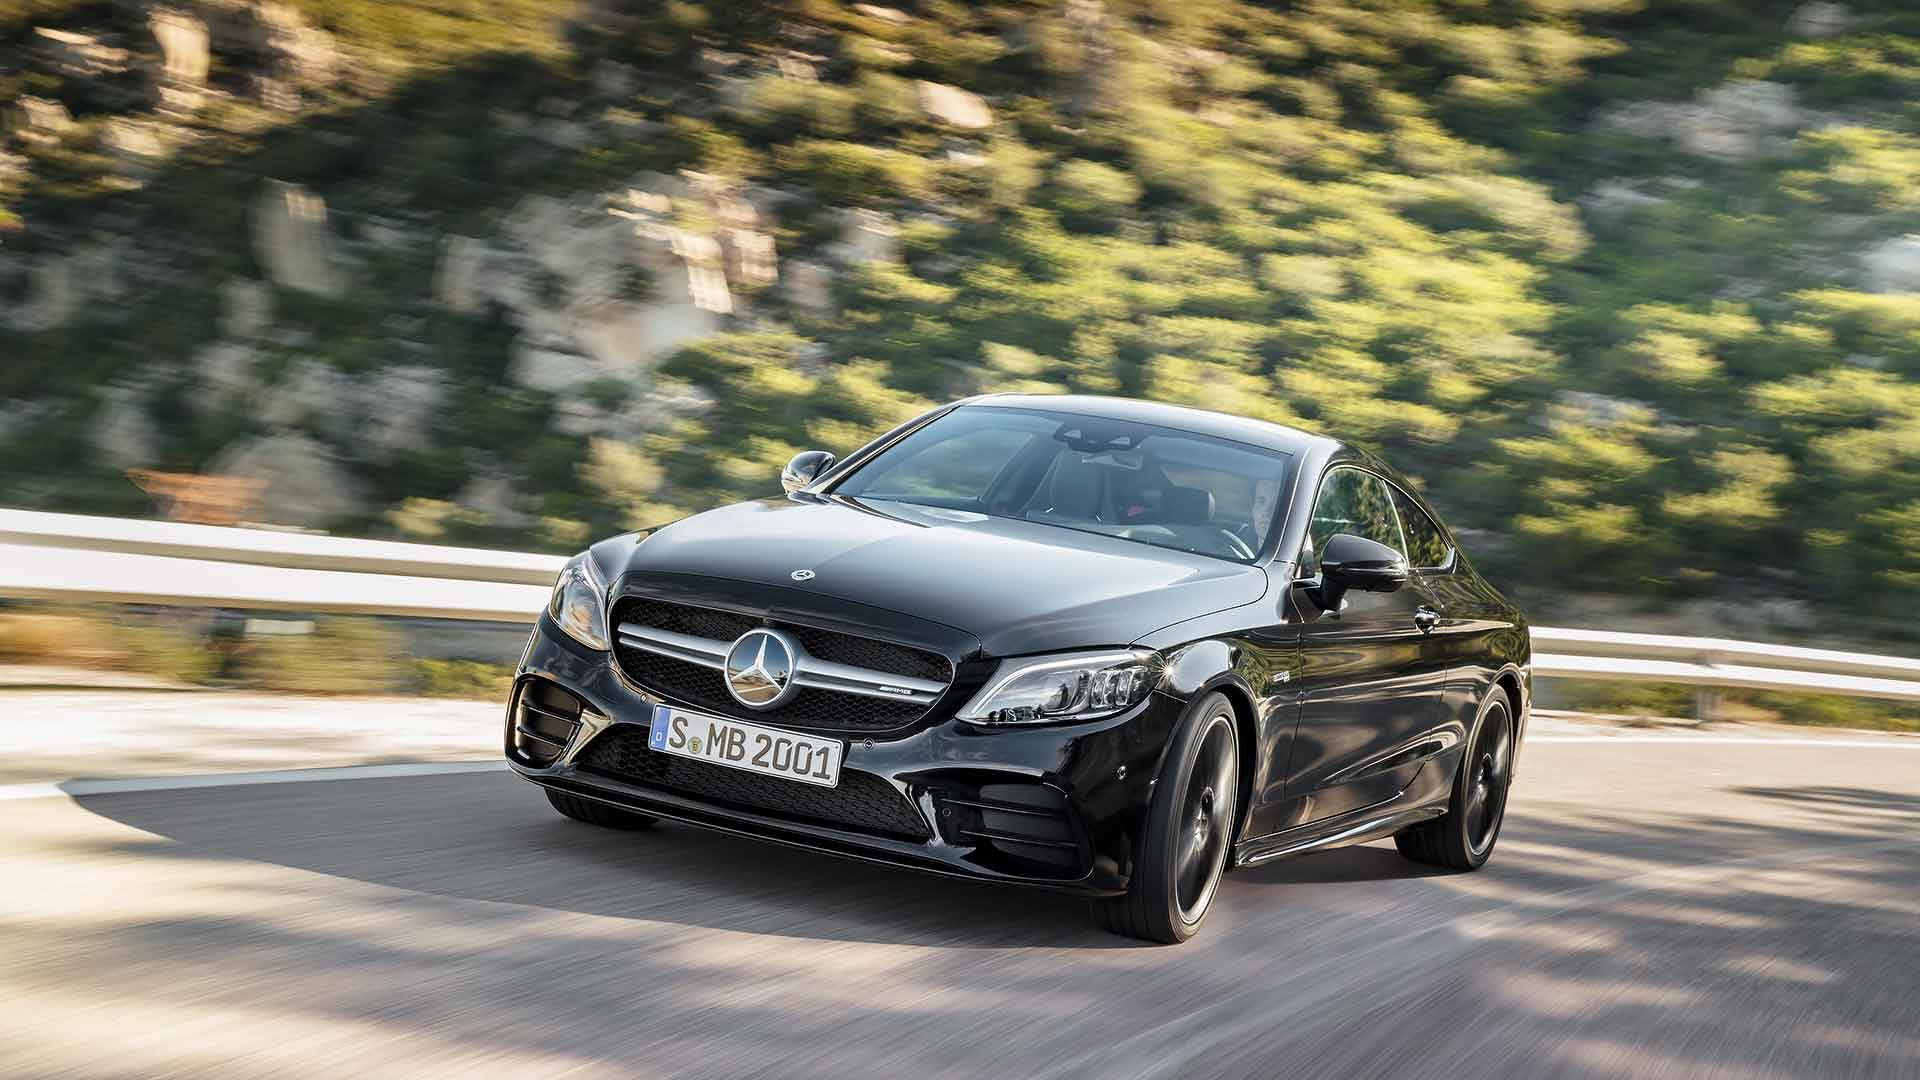 Refreshed C-Class Coupe And Cabriolet Bring High-Tech Tweaks